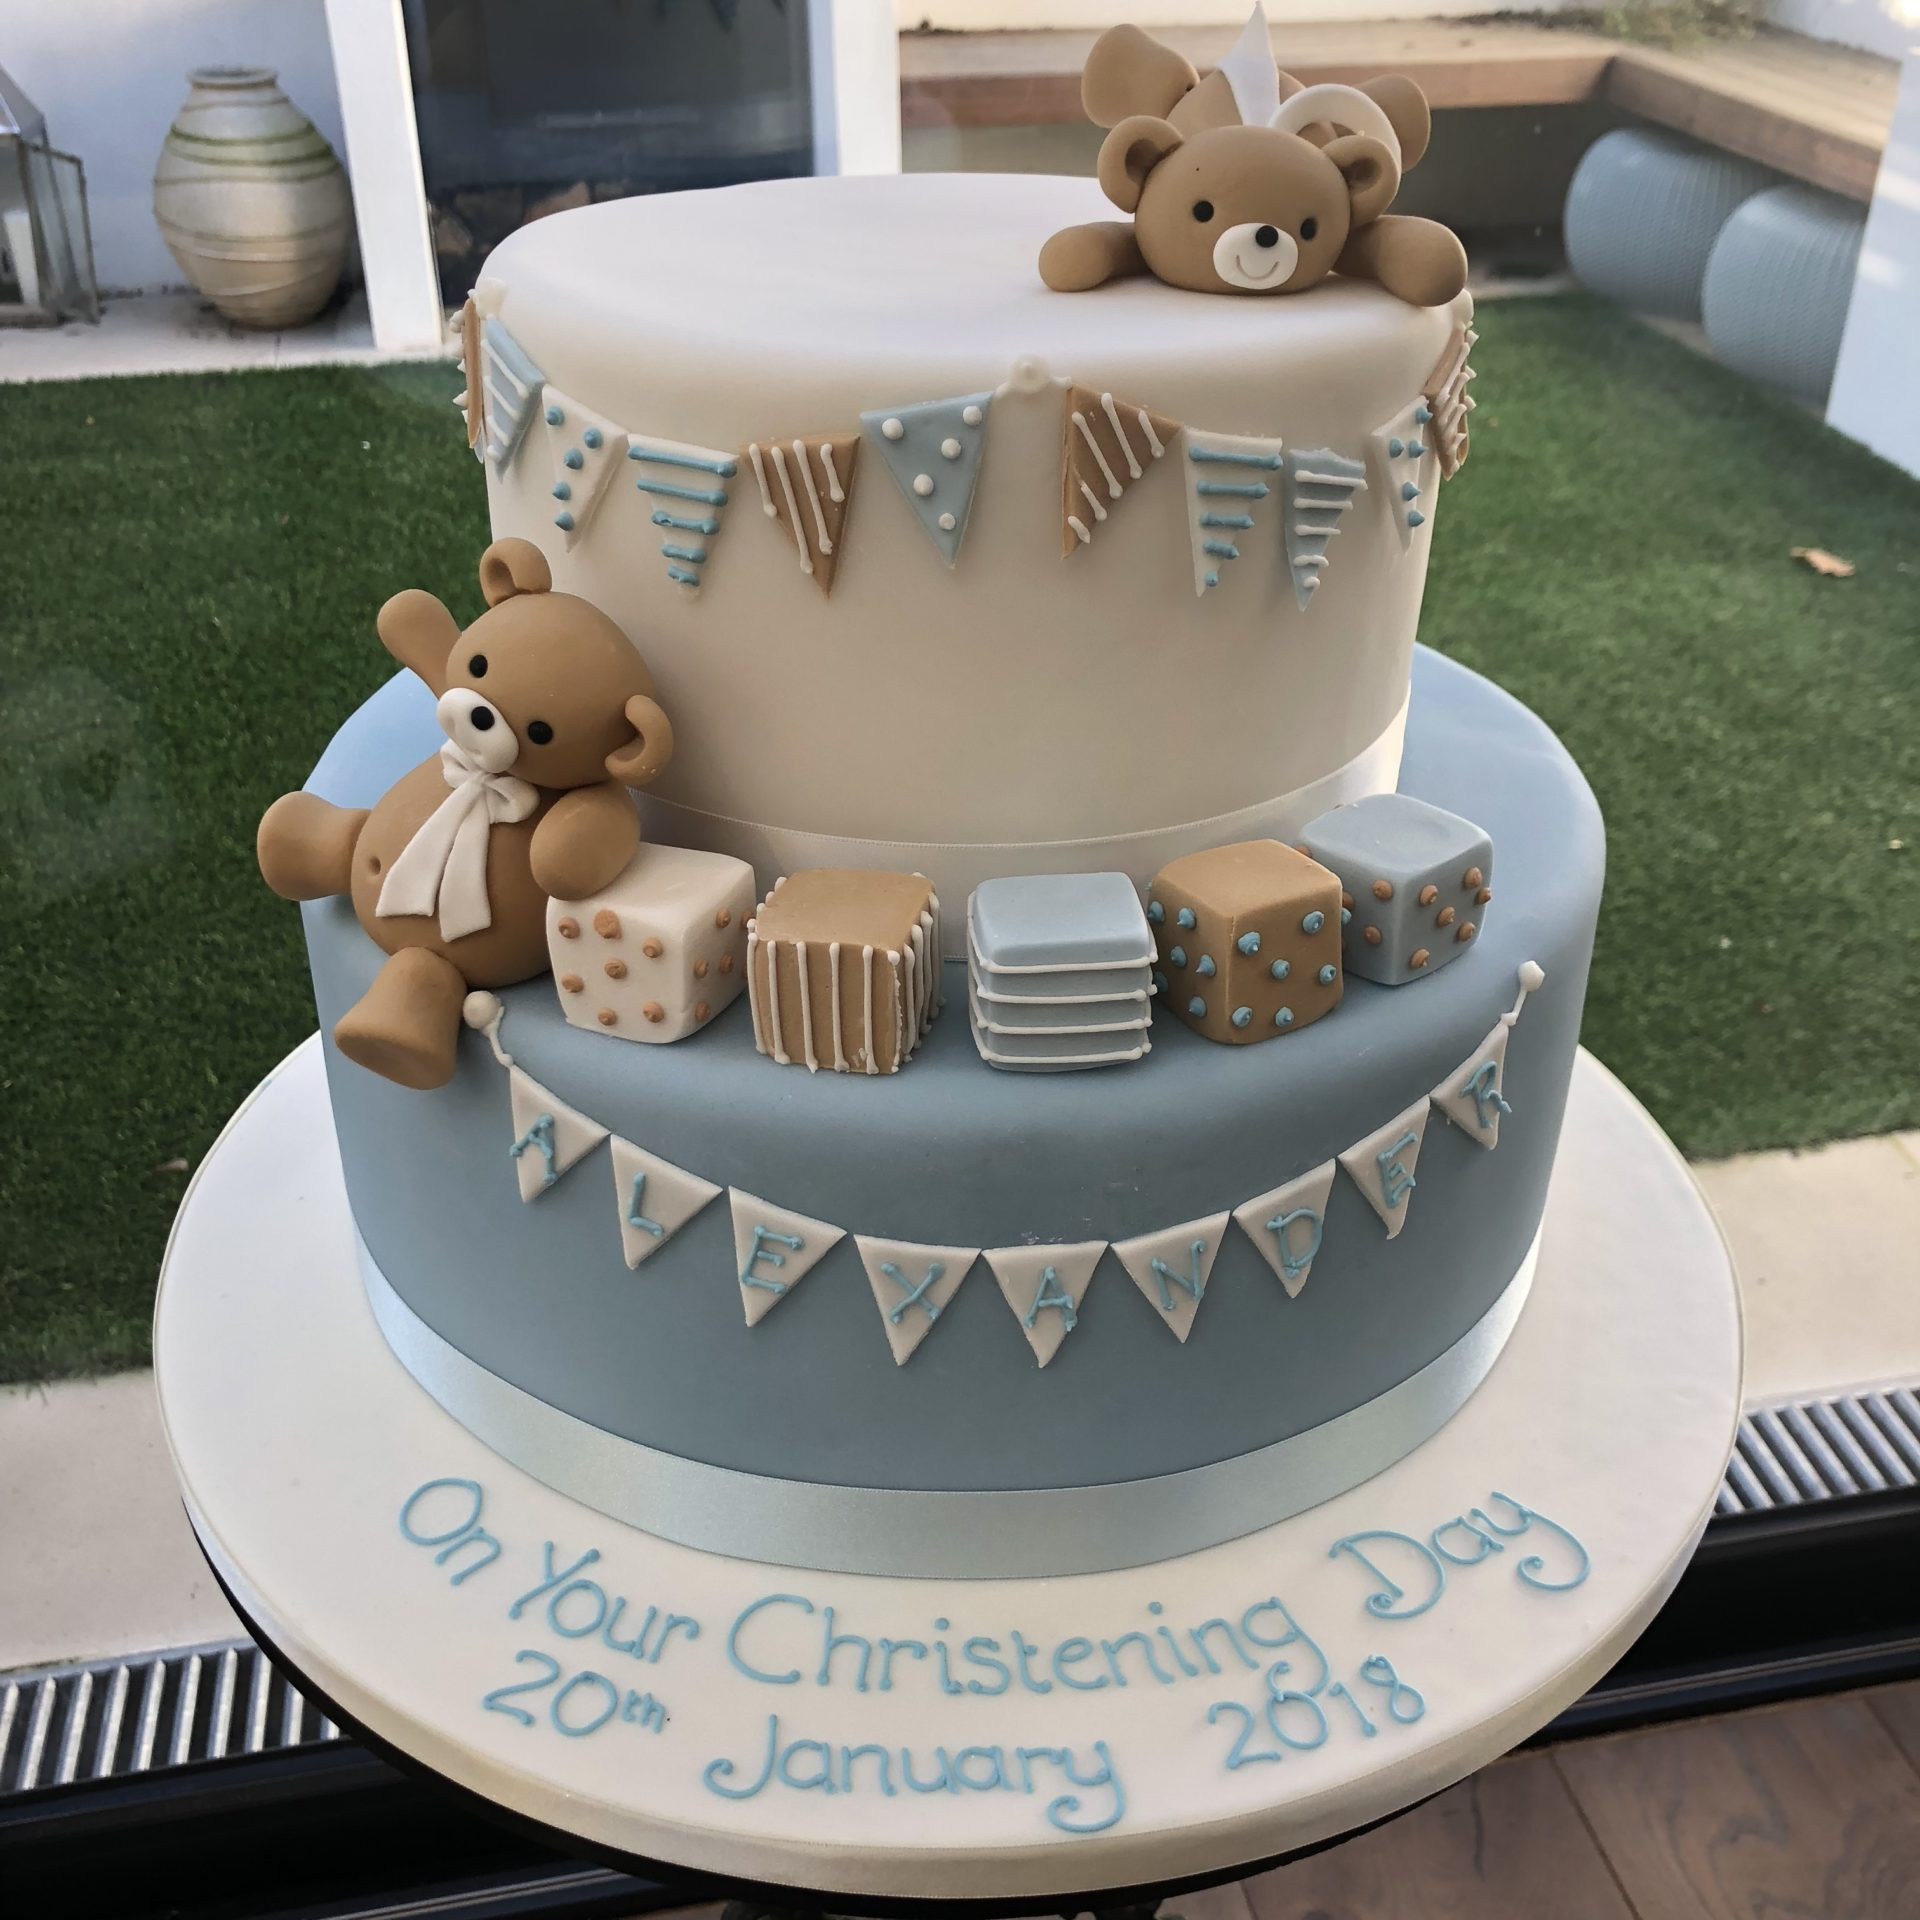 Partying Teddy Bear Christening Cake